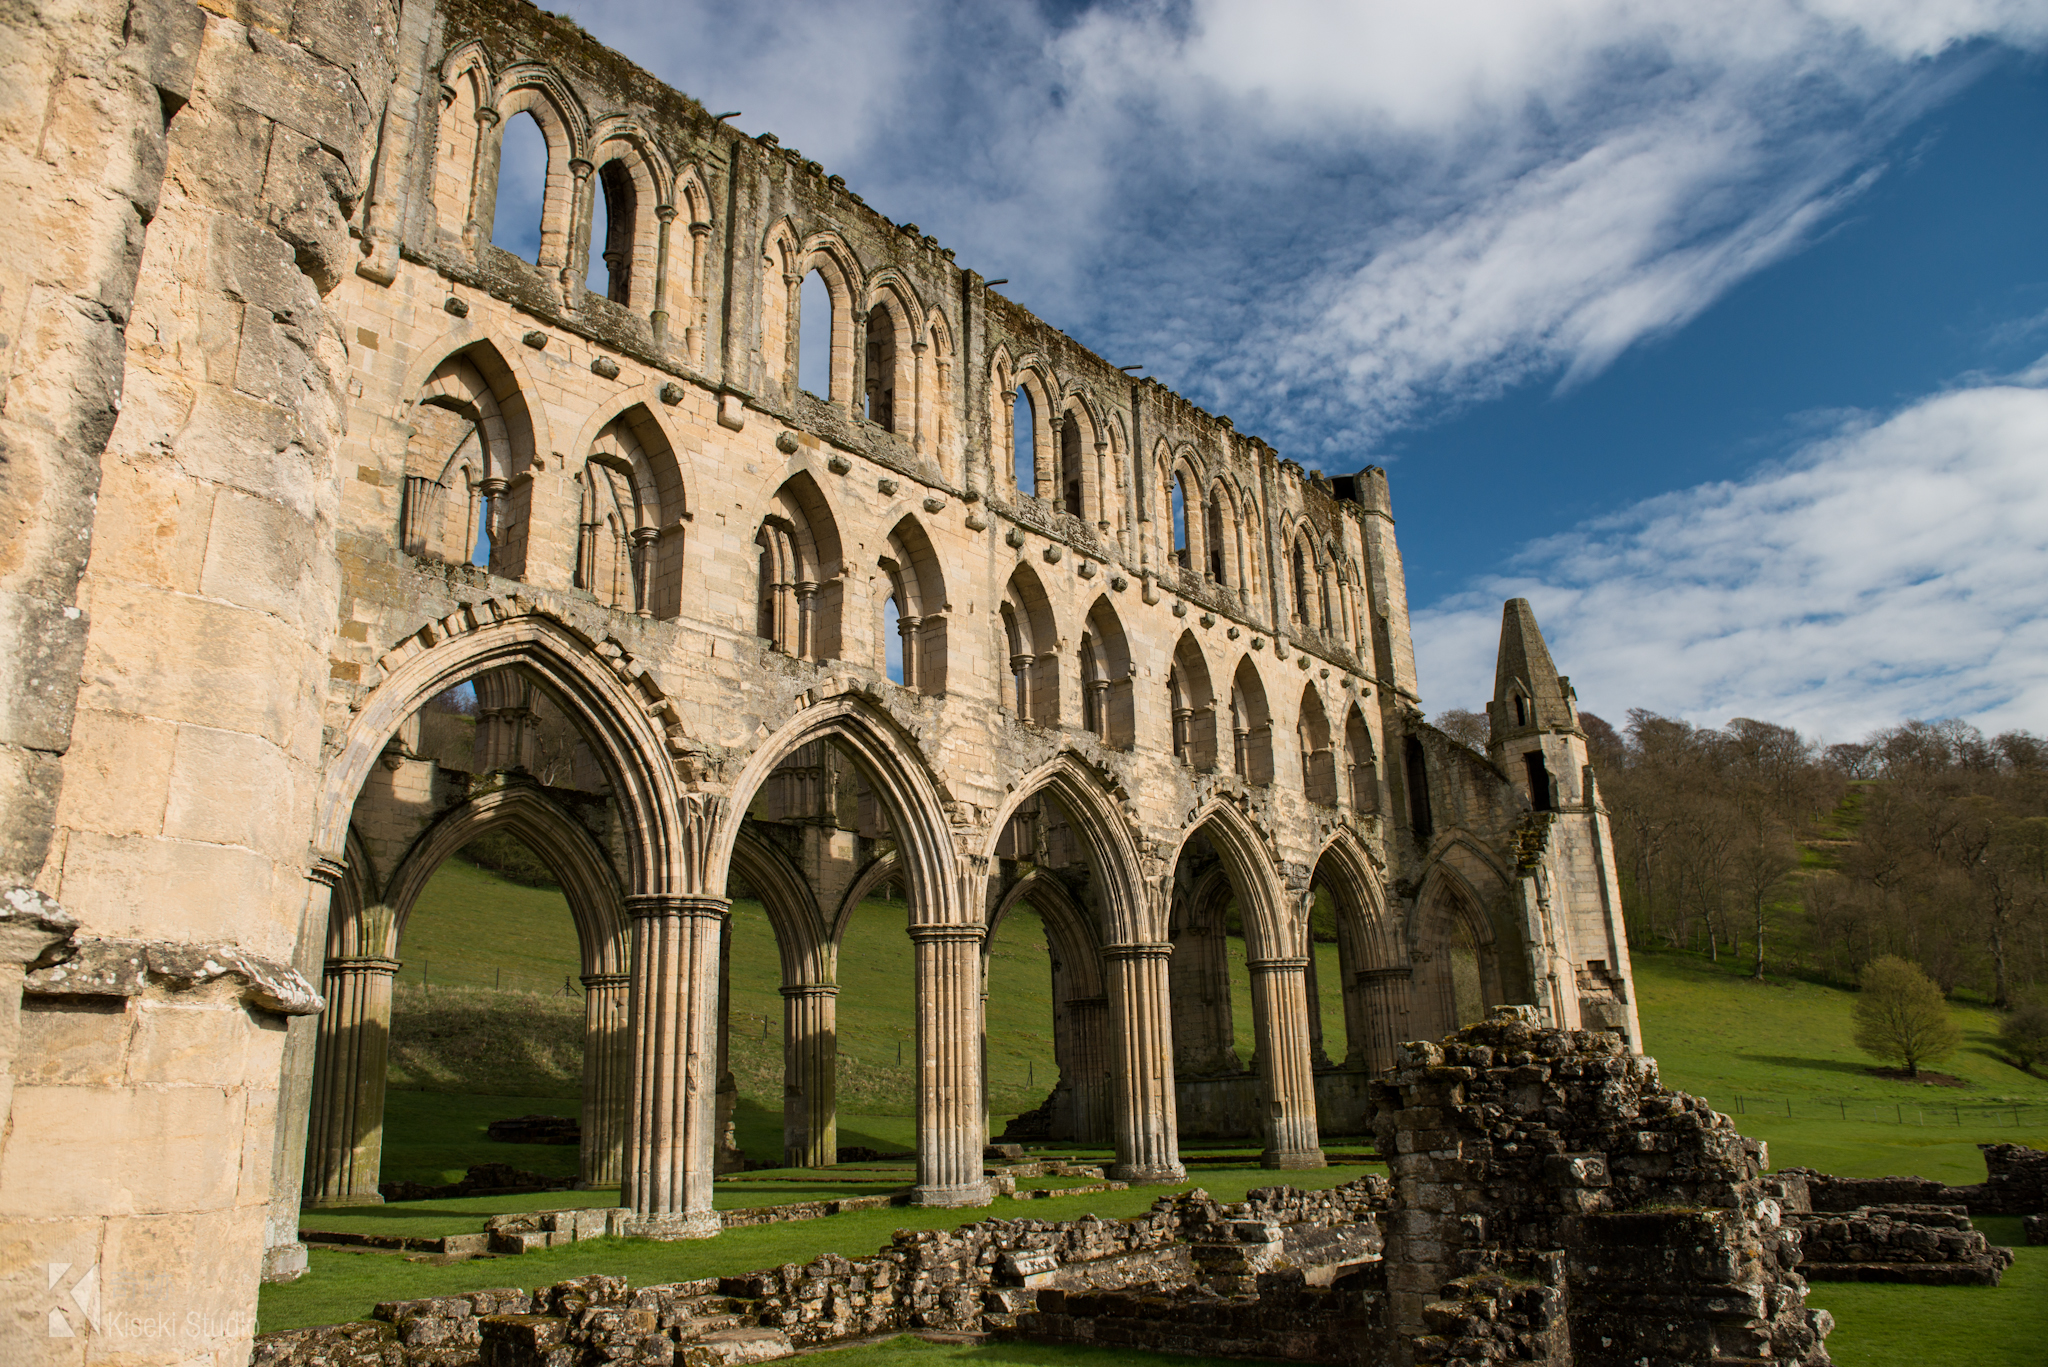 Rievaulx Abbey English Heritage Site Kiseki Studio